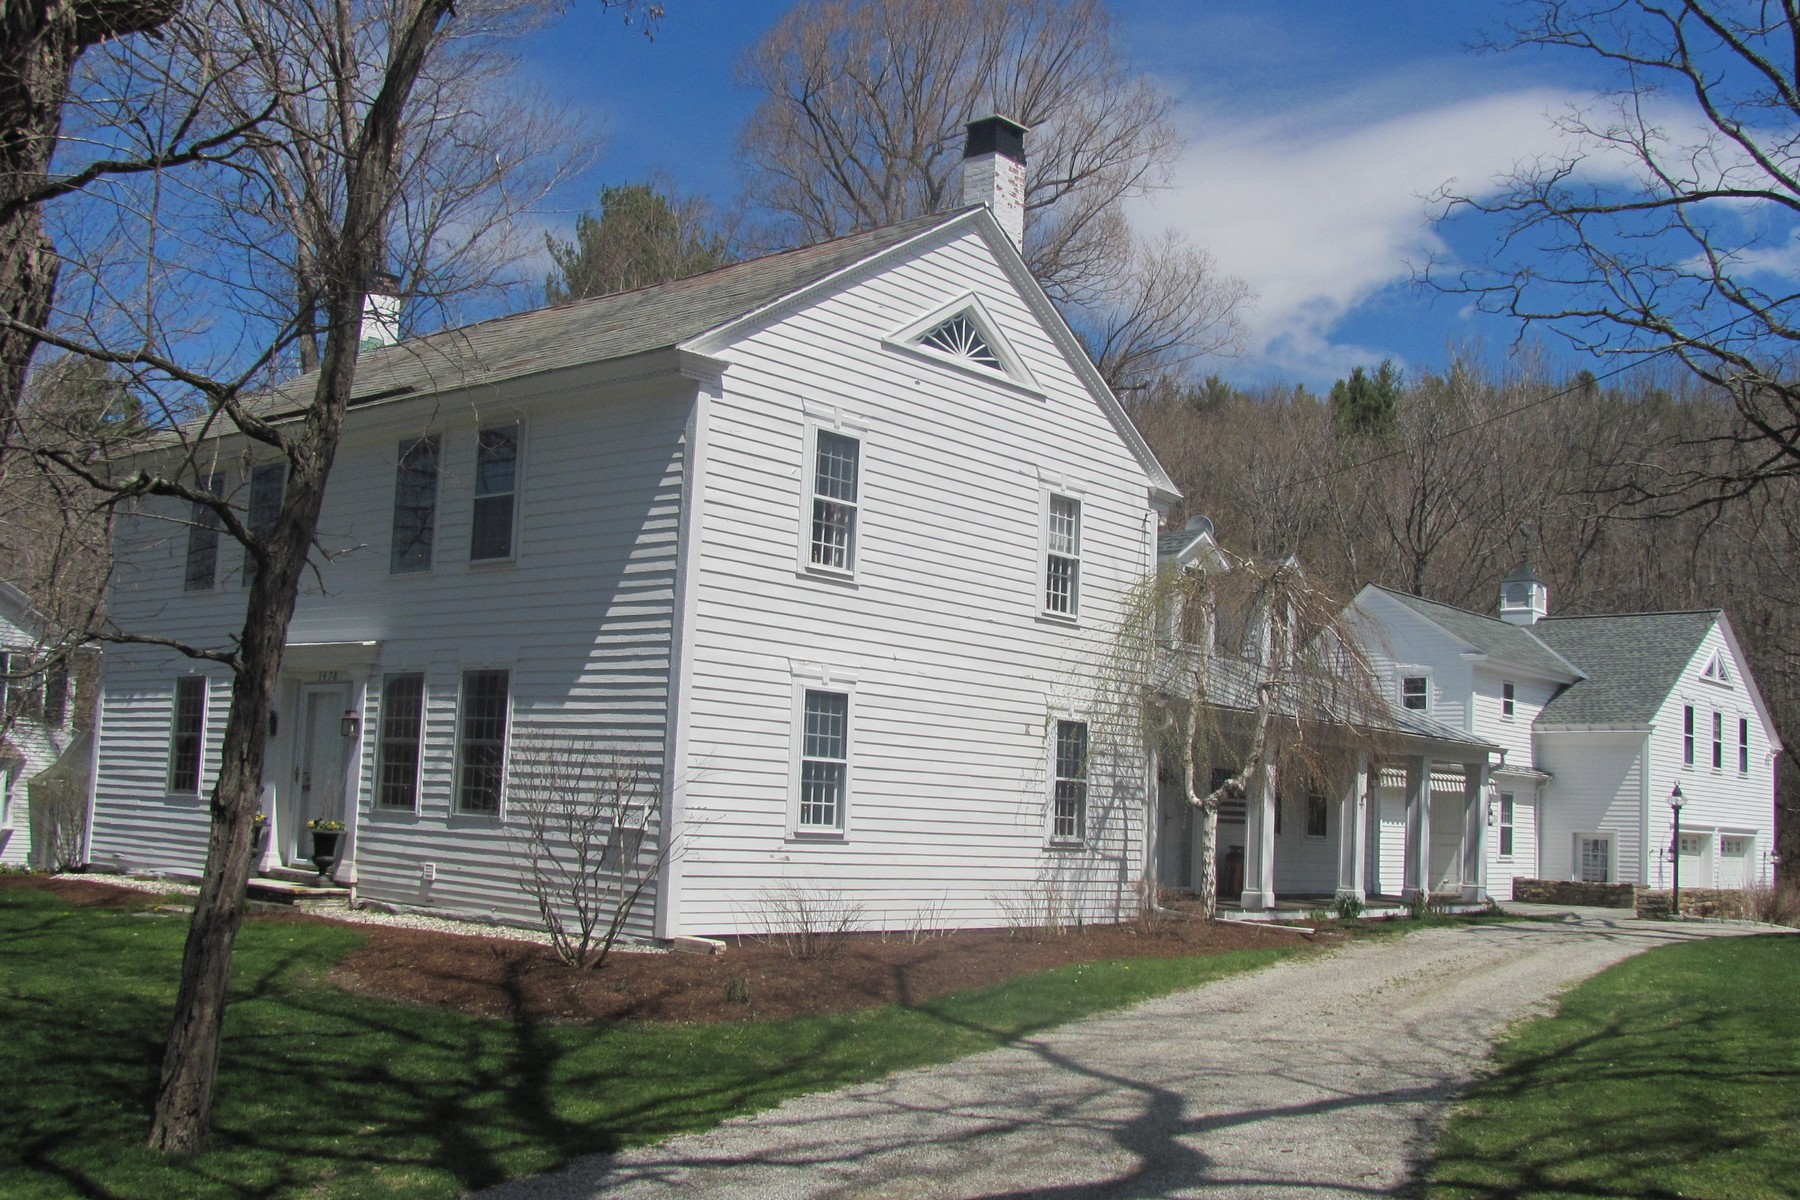 Single Family Home for Sale at Masterfully Restored Colonial in Dorset Village 3478 Route 30 Dorset, Vermont 05251 United States